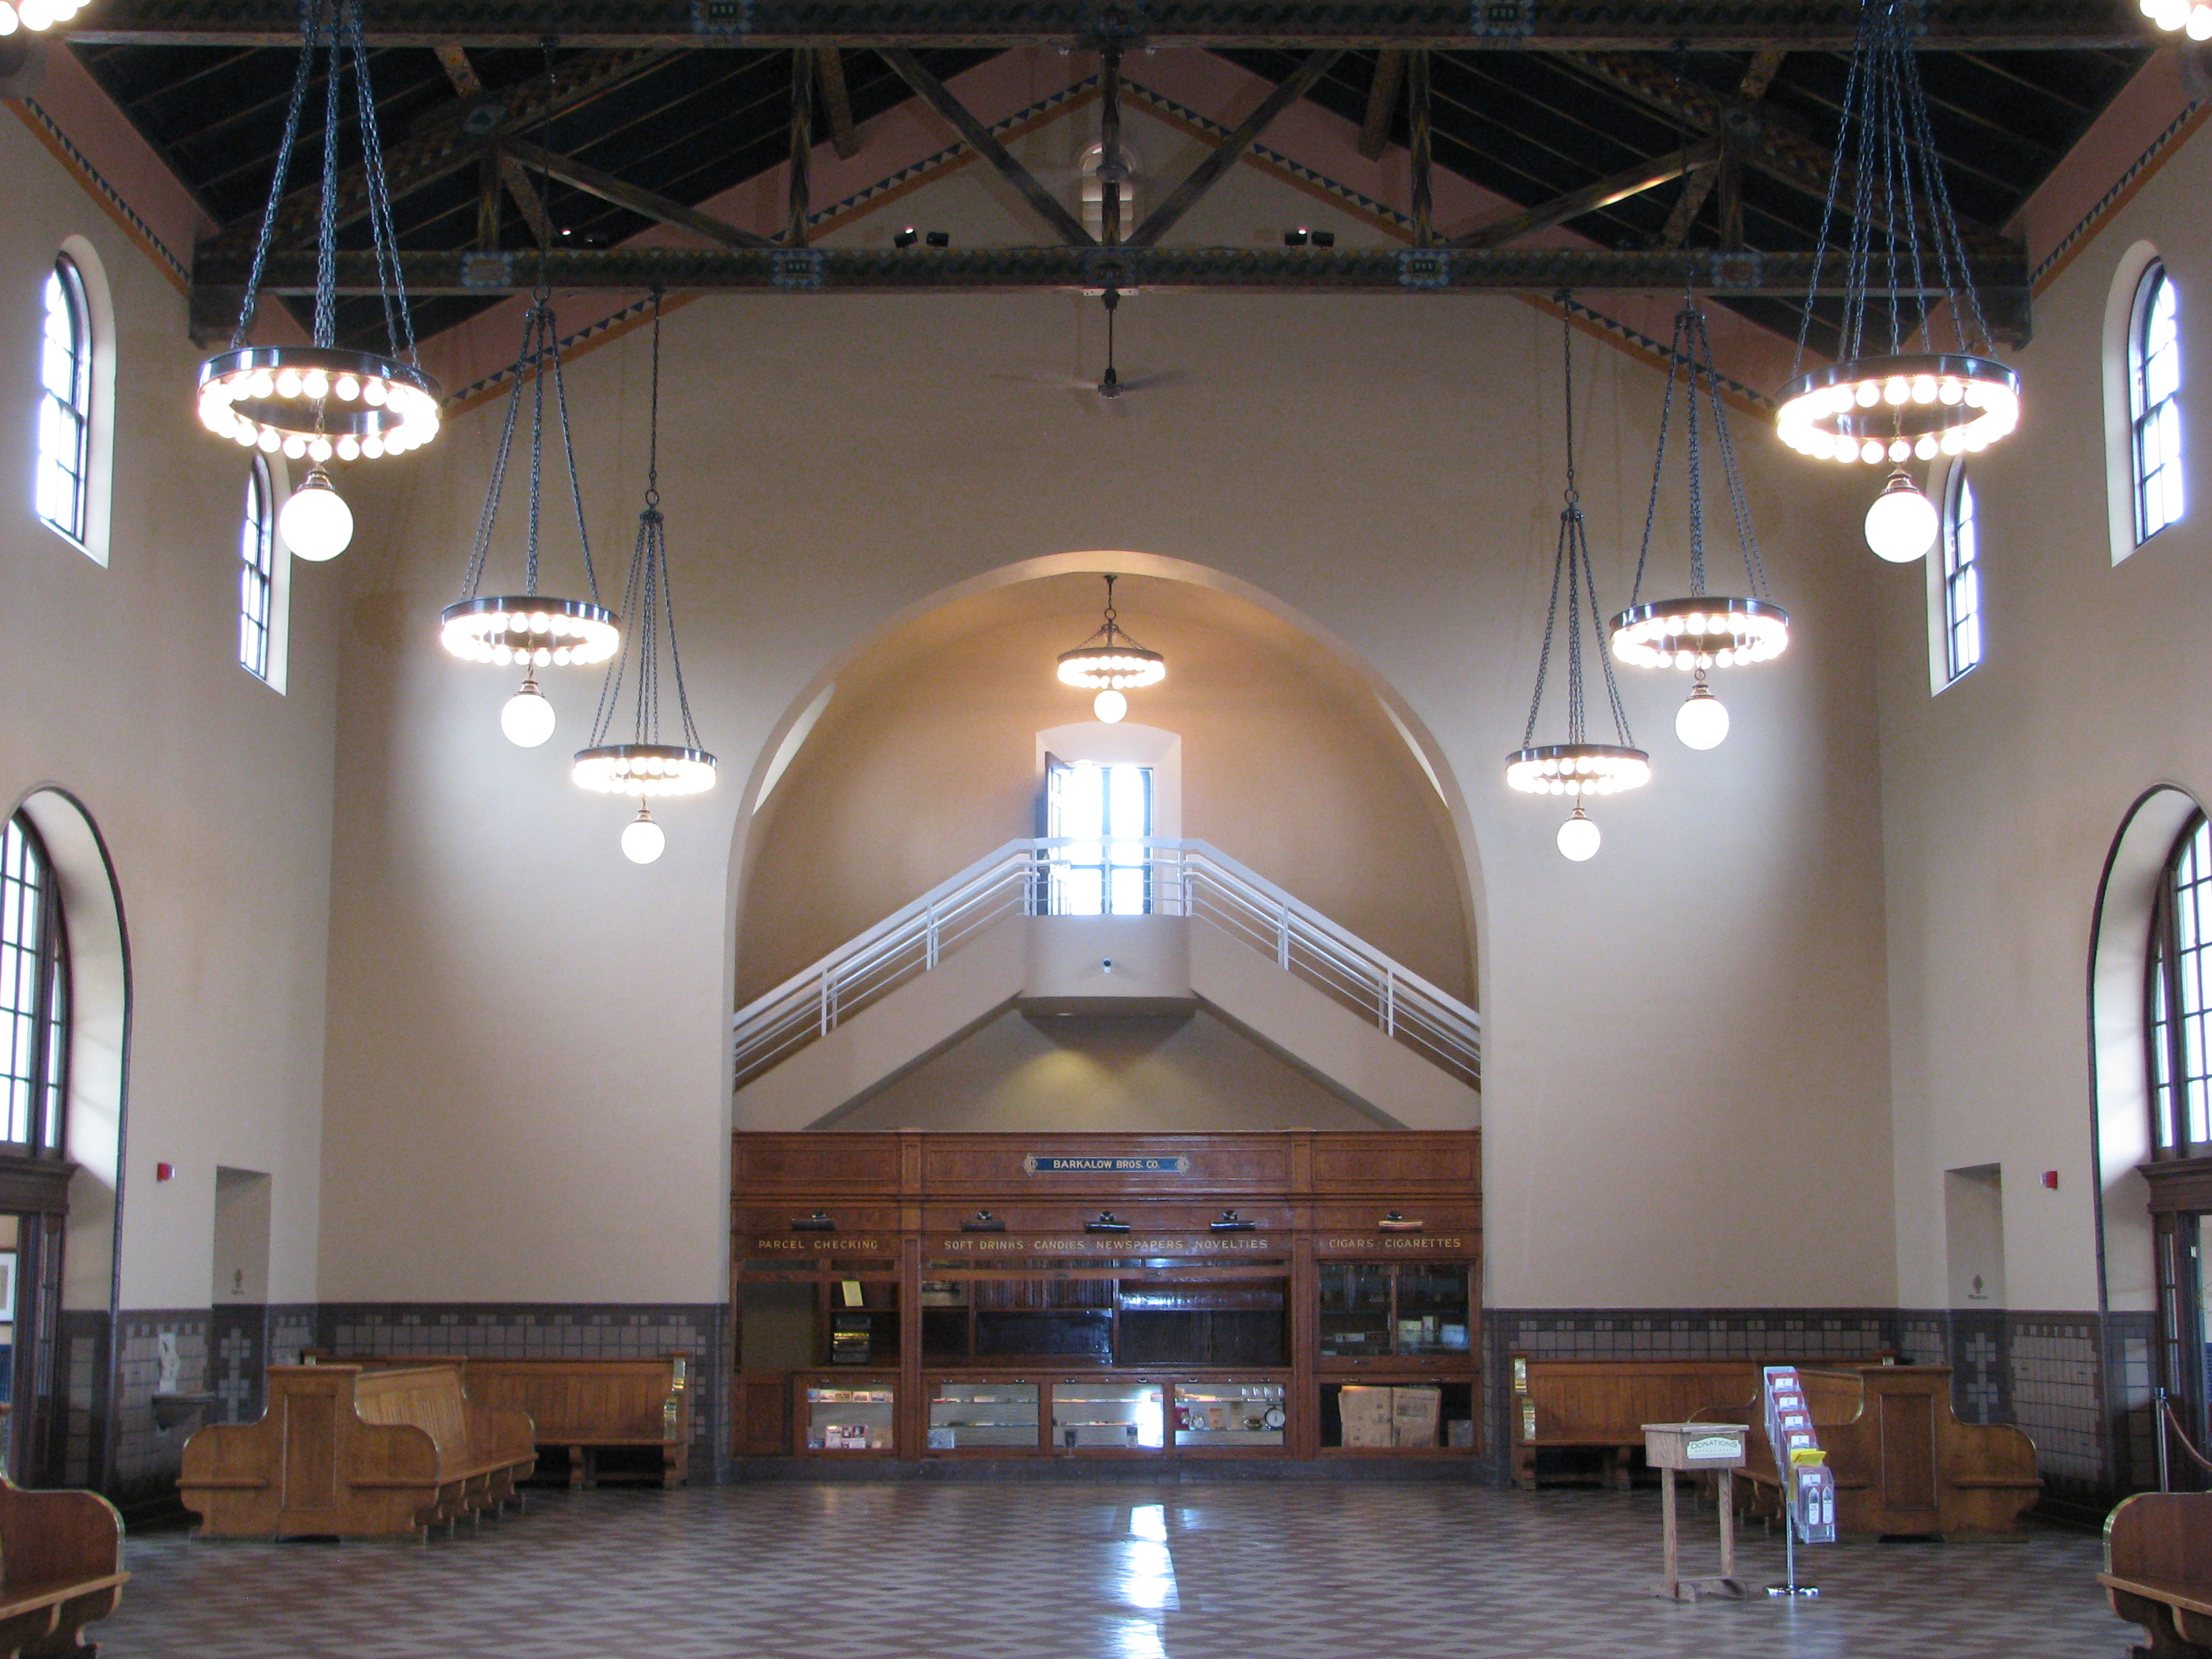 Boise Station, 2009. Copyright Jim Hamre, used by permission.